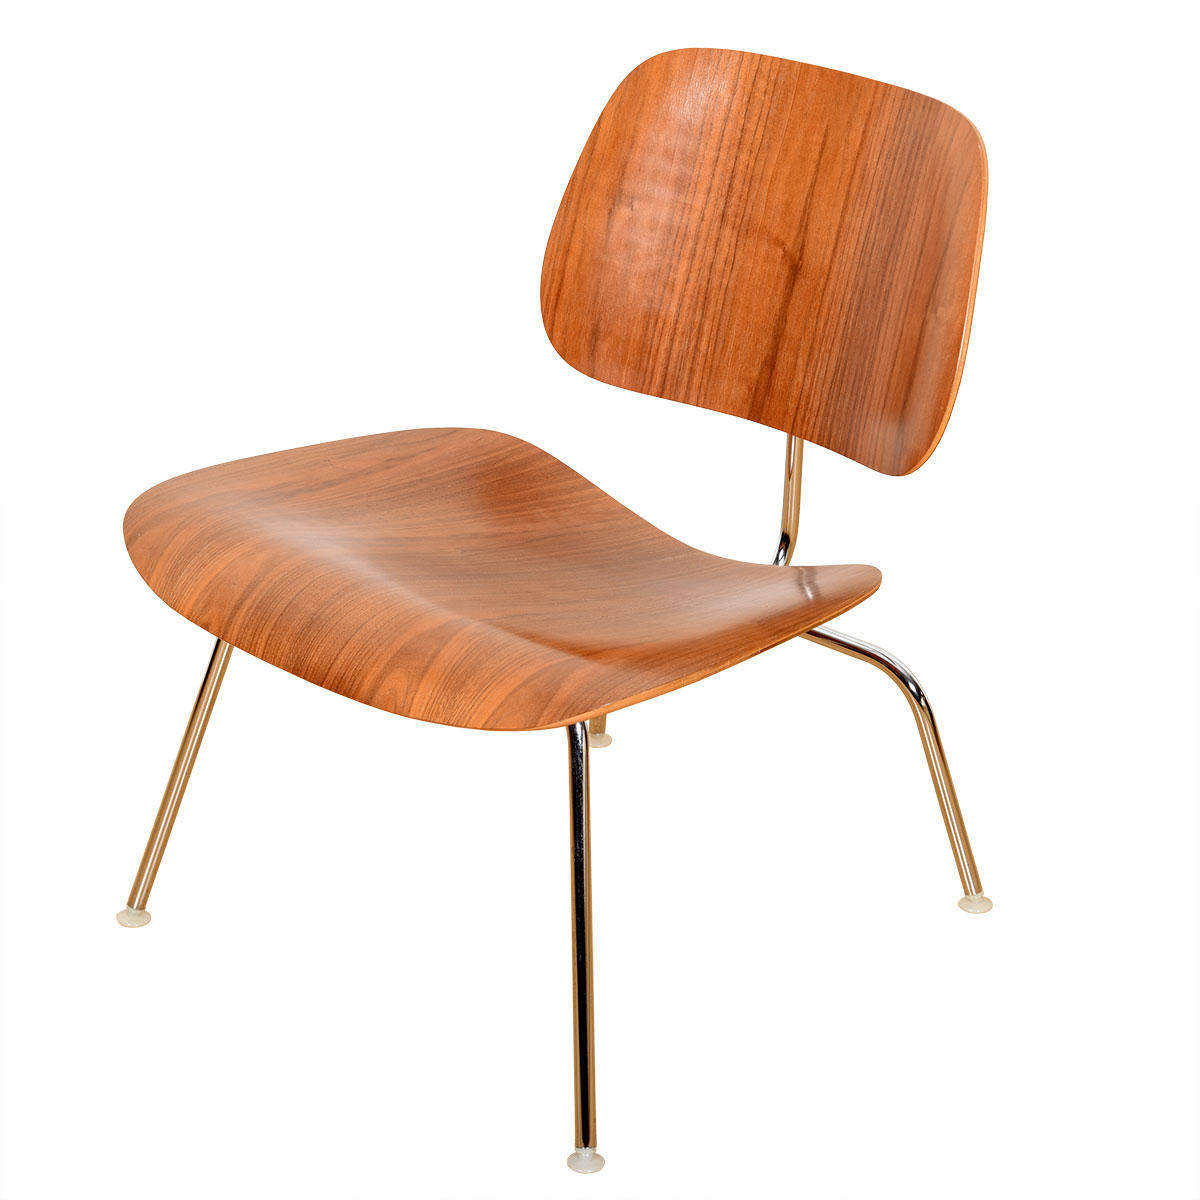 Authentic Eames Bentwood & Chrome Chair by Herman Miller